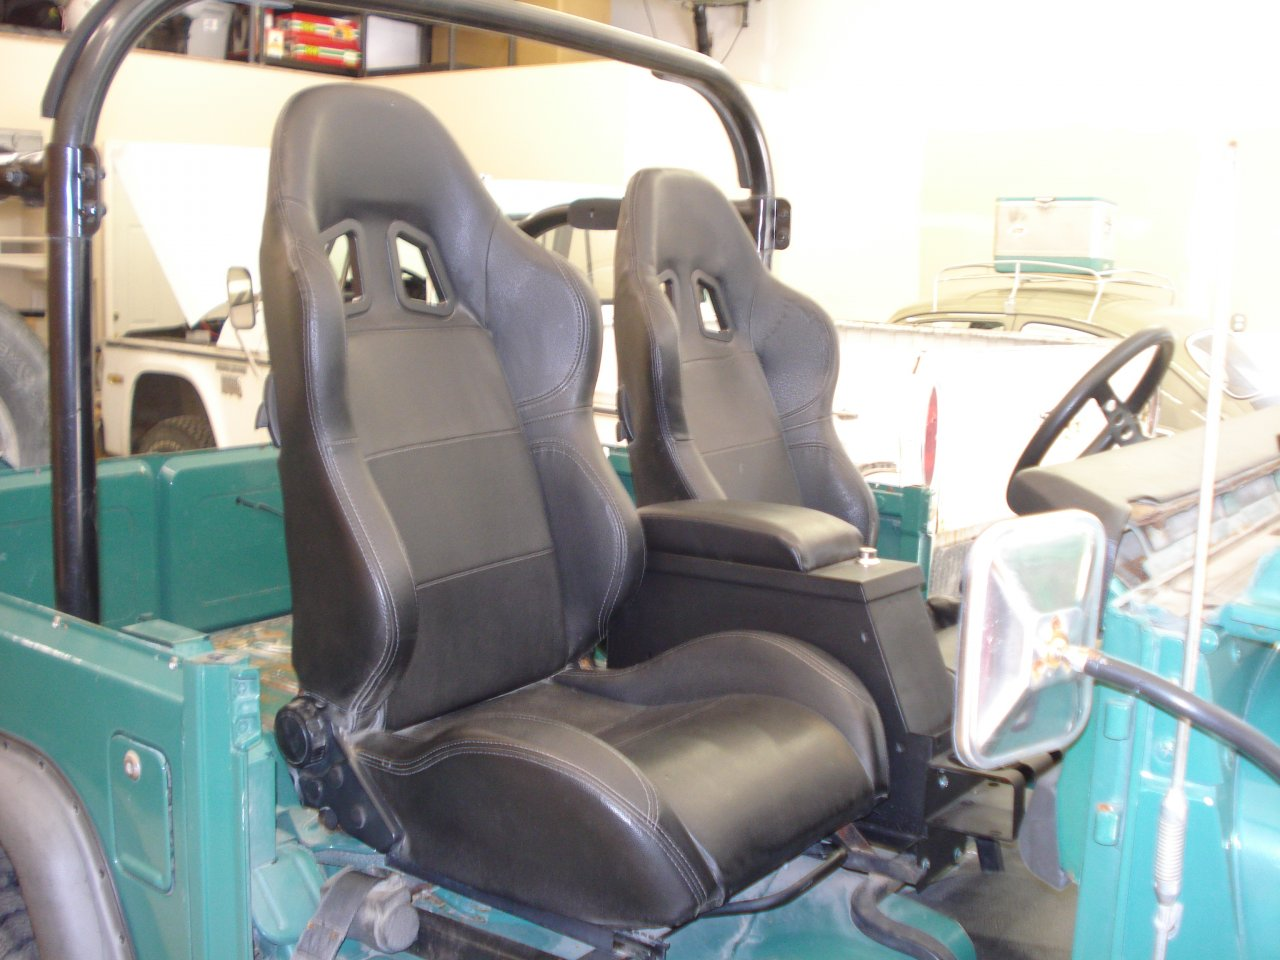 For Sale - Aftermarket FJ40 bucket seats | IH8MUD Forum